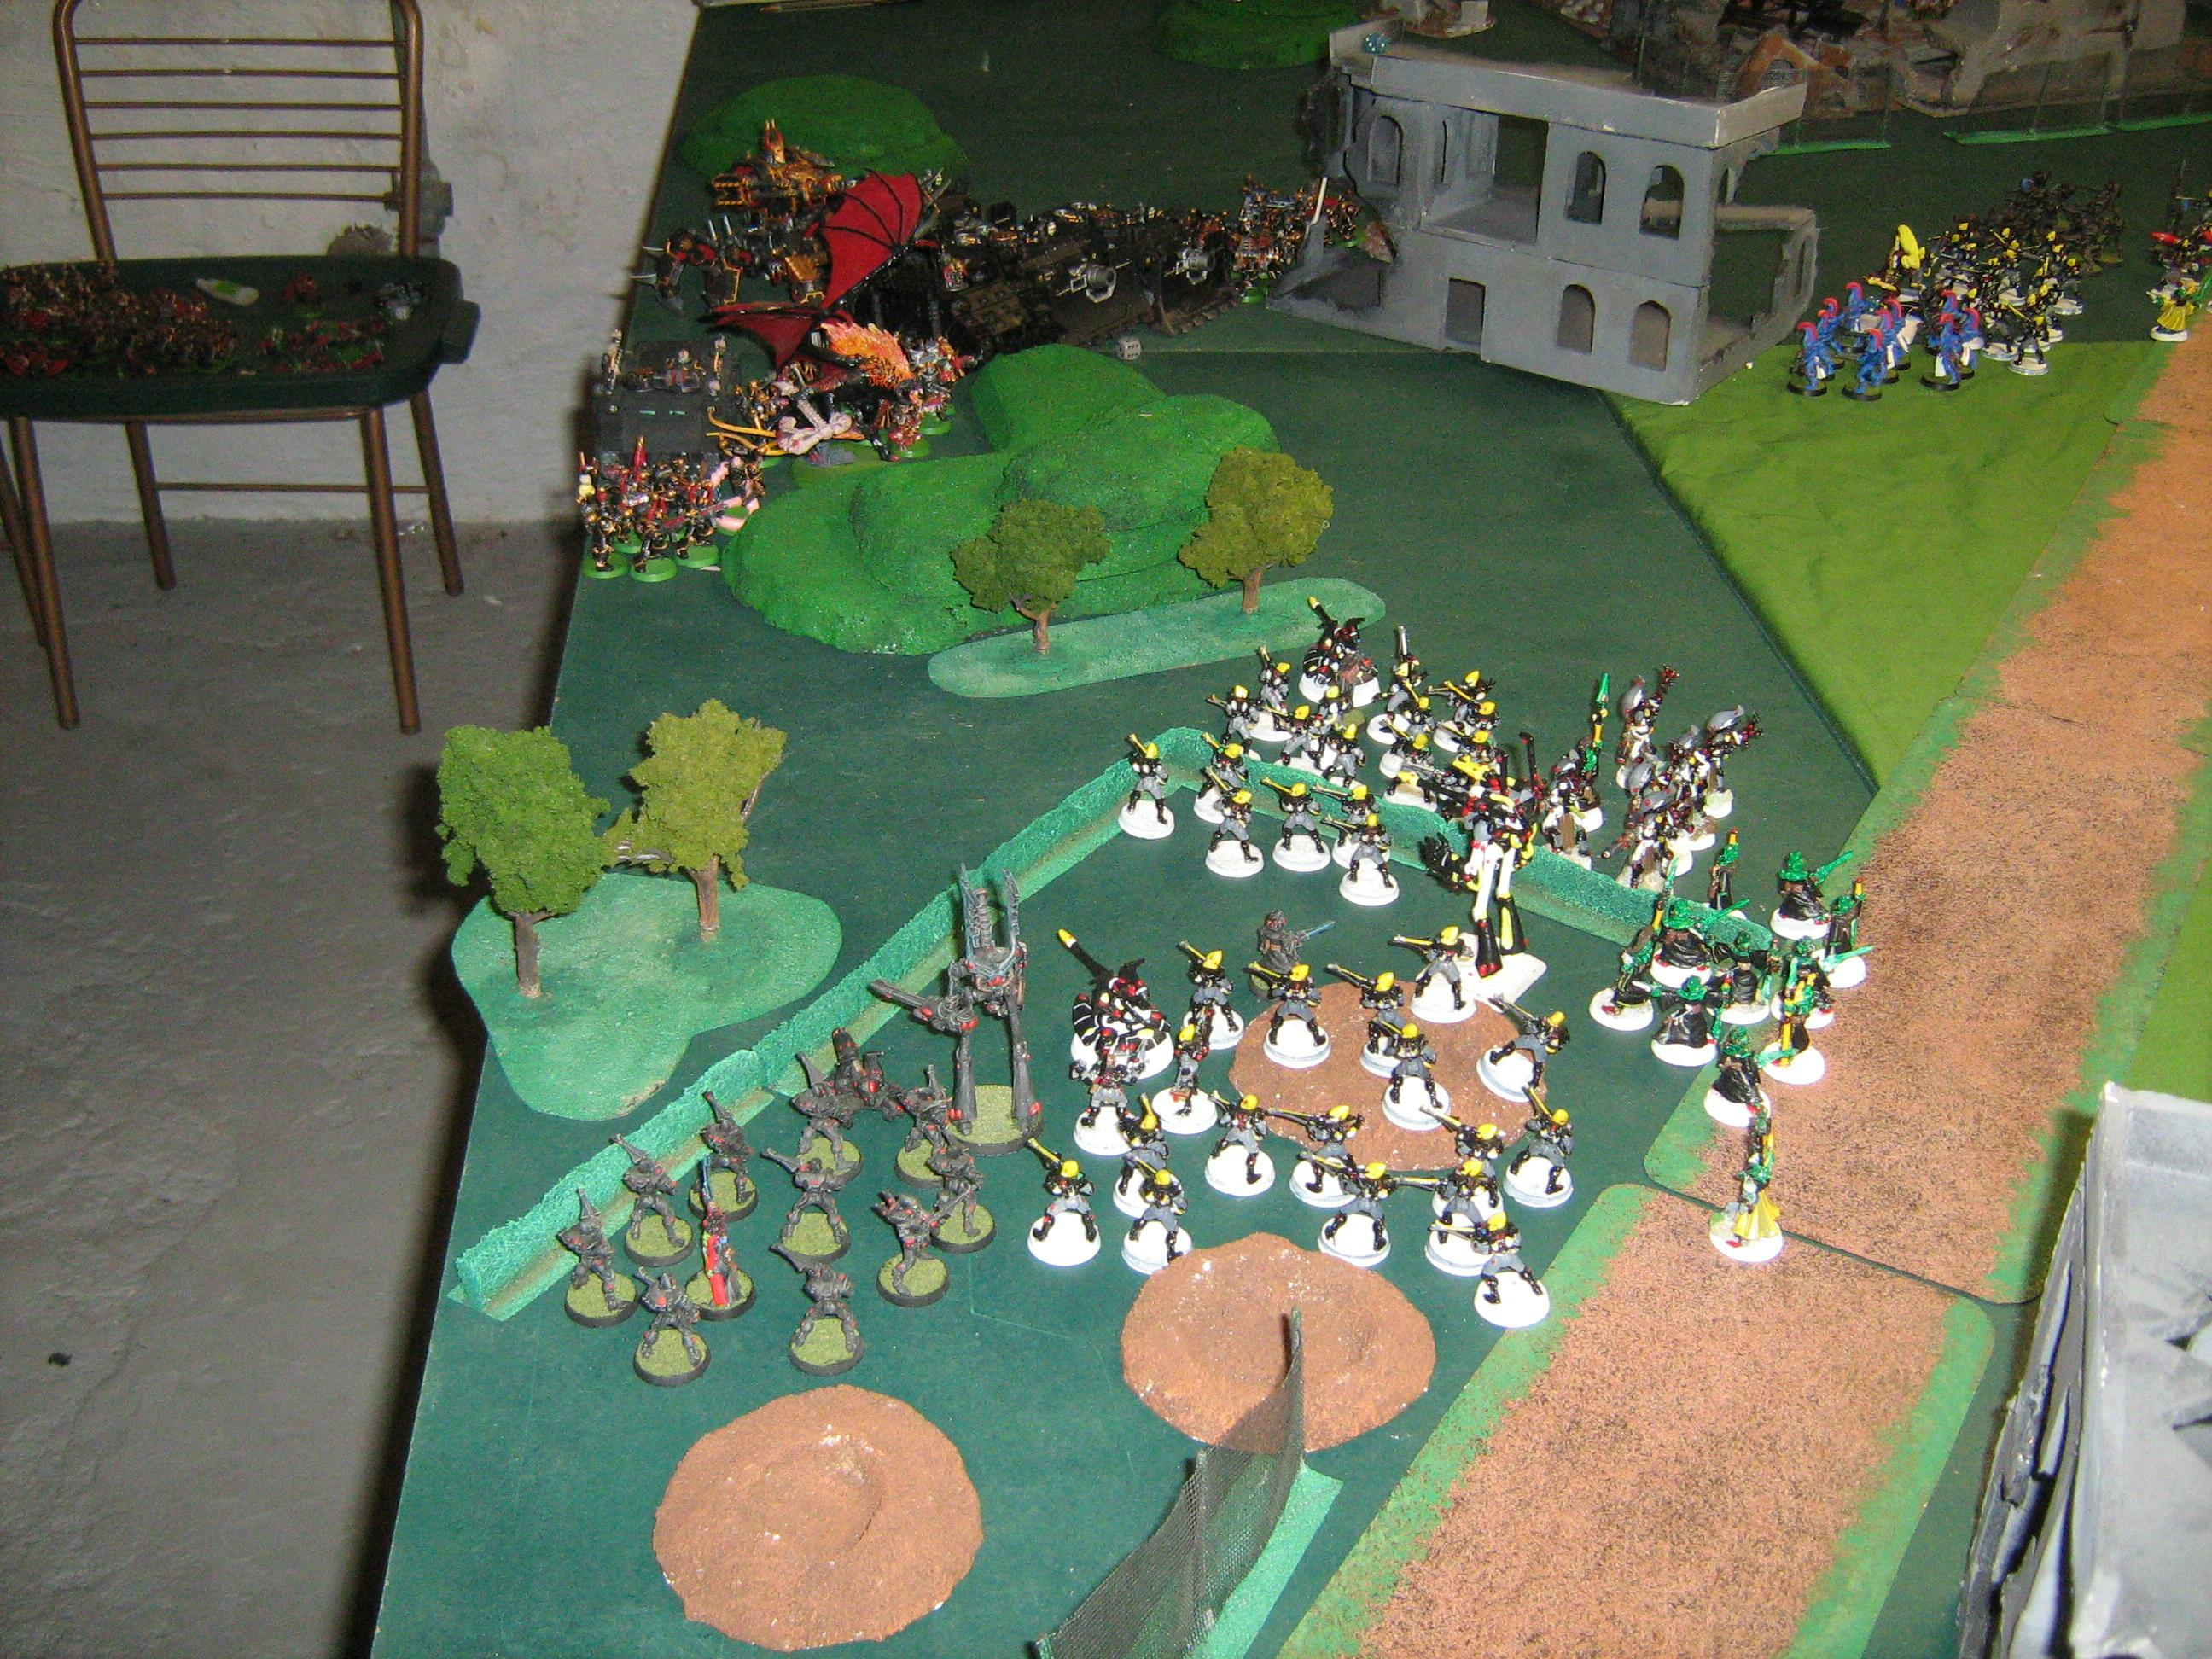 Battle Report, Deployment, Eldar, Terrain, Warhammer 40,000, Zone